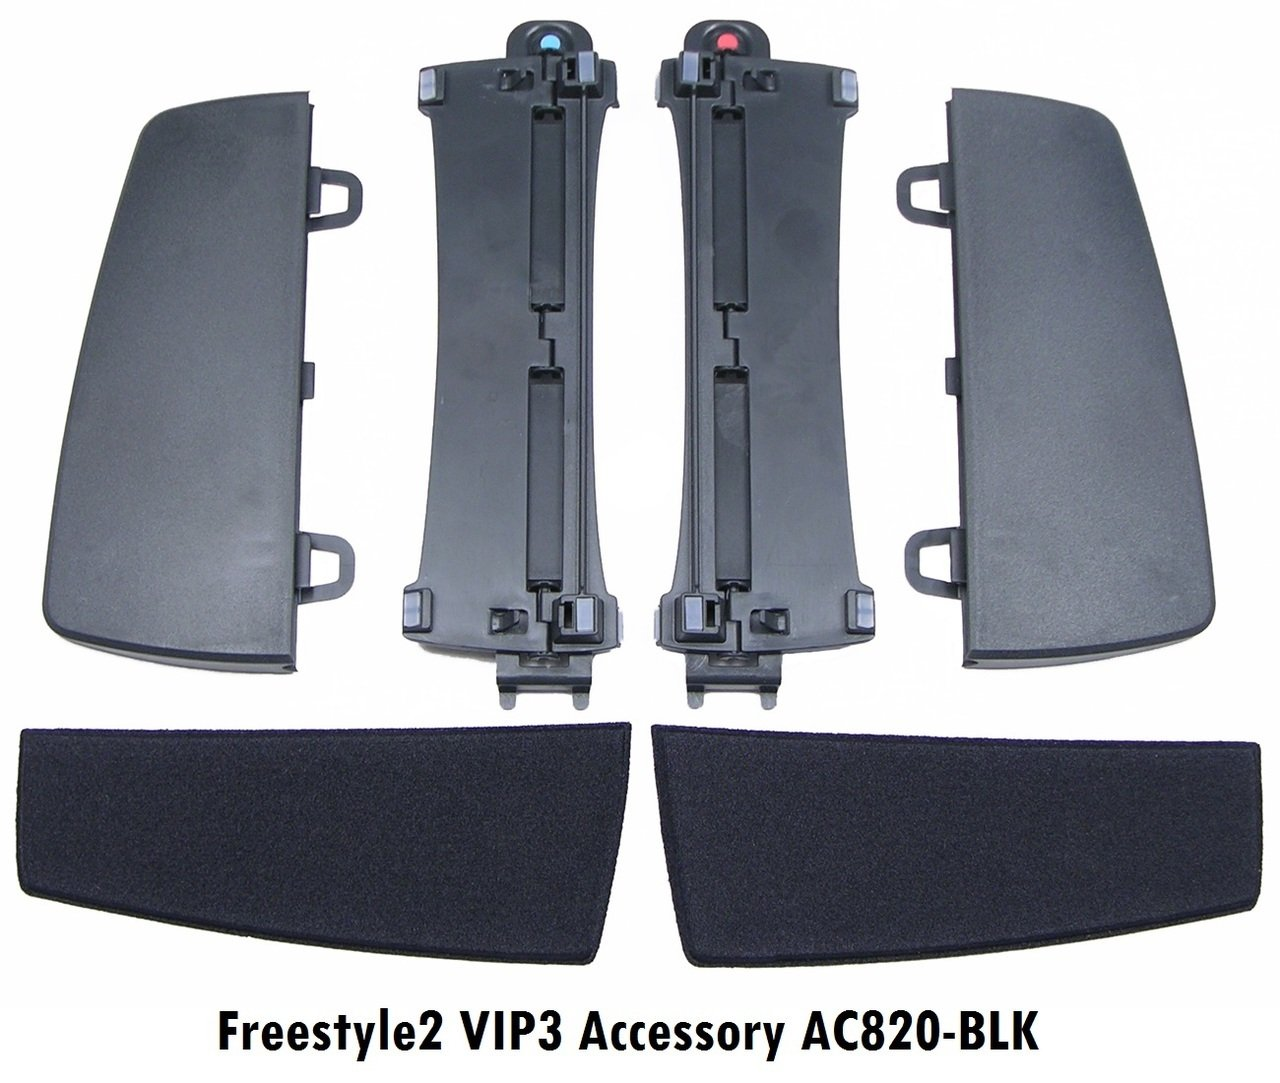 VIP3 Accessory Kit for Kinesis Freestyle2 Keyboard (KIN-FS-VIP3) by KINESIS